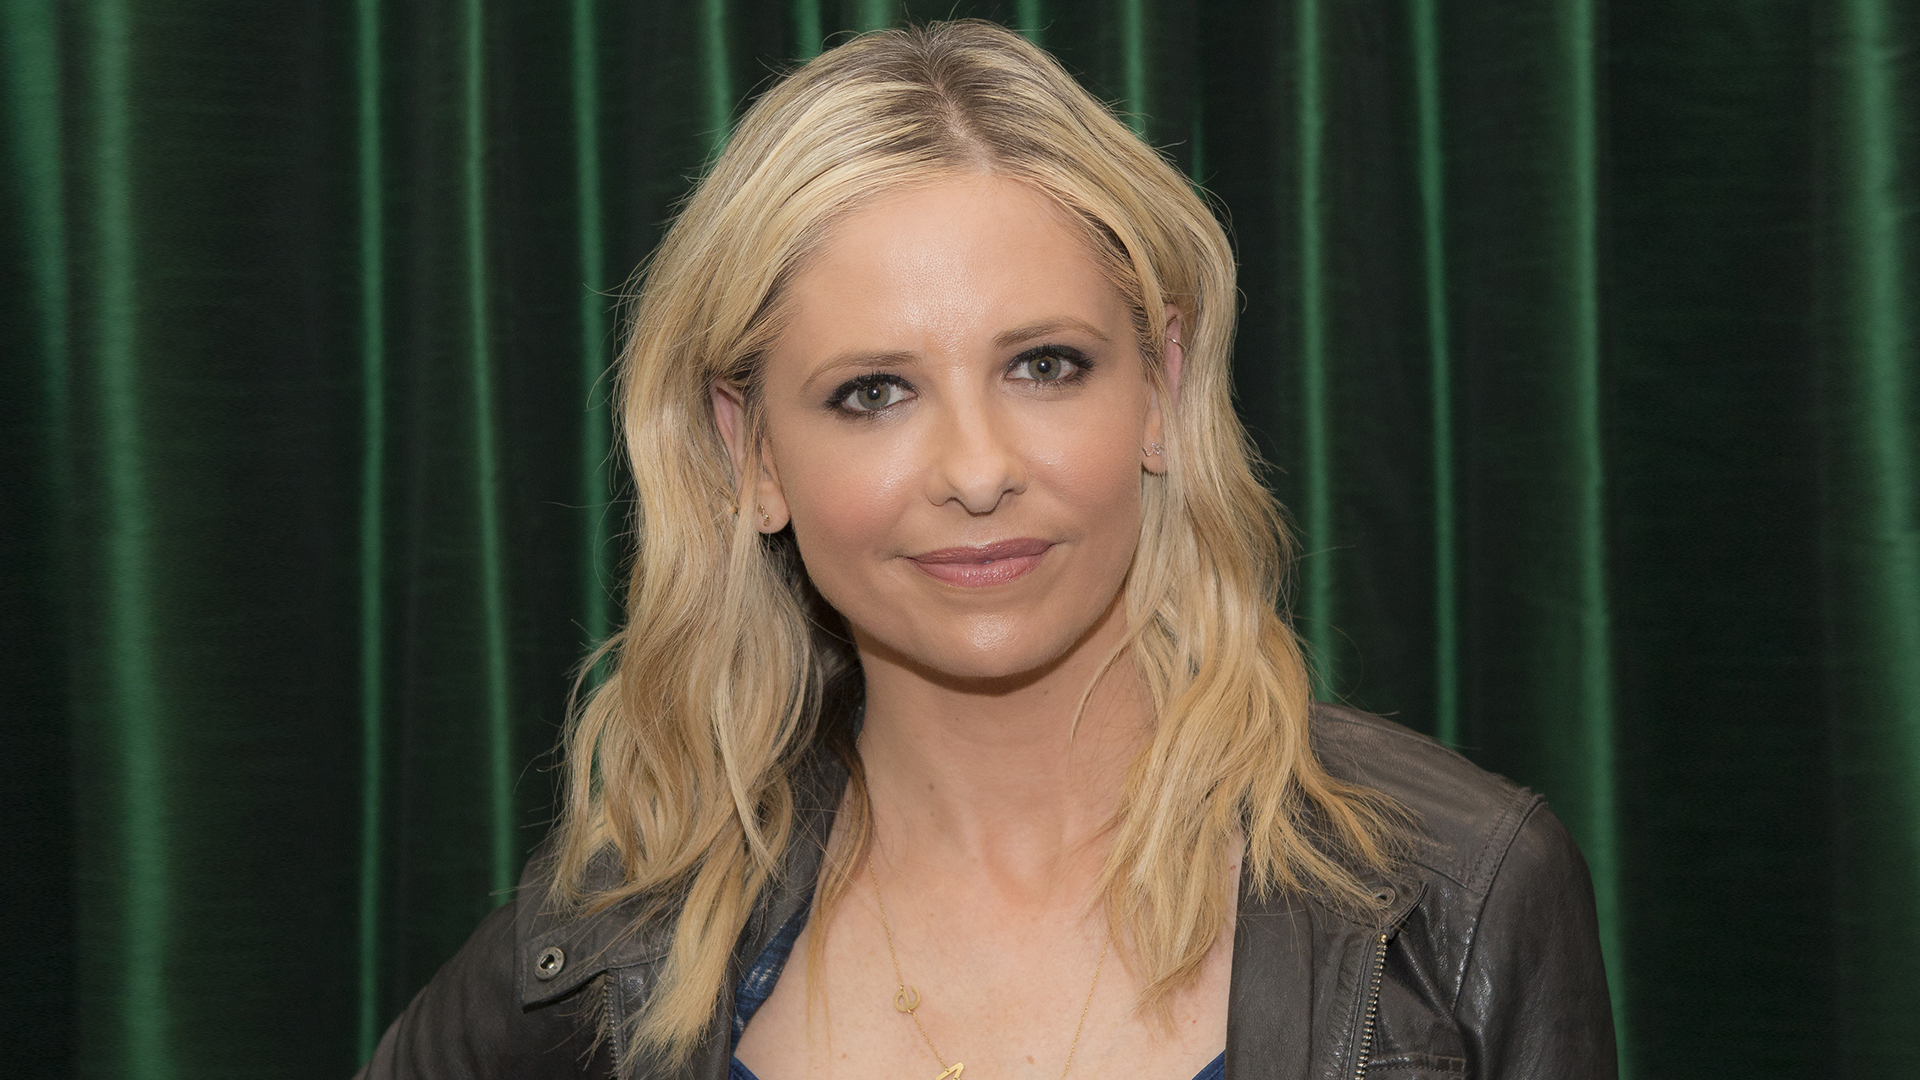 Sarah Michelle Gellar Has Dyed Her Blonde Hair a Shade of Pink